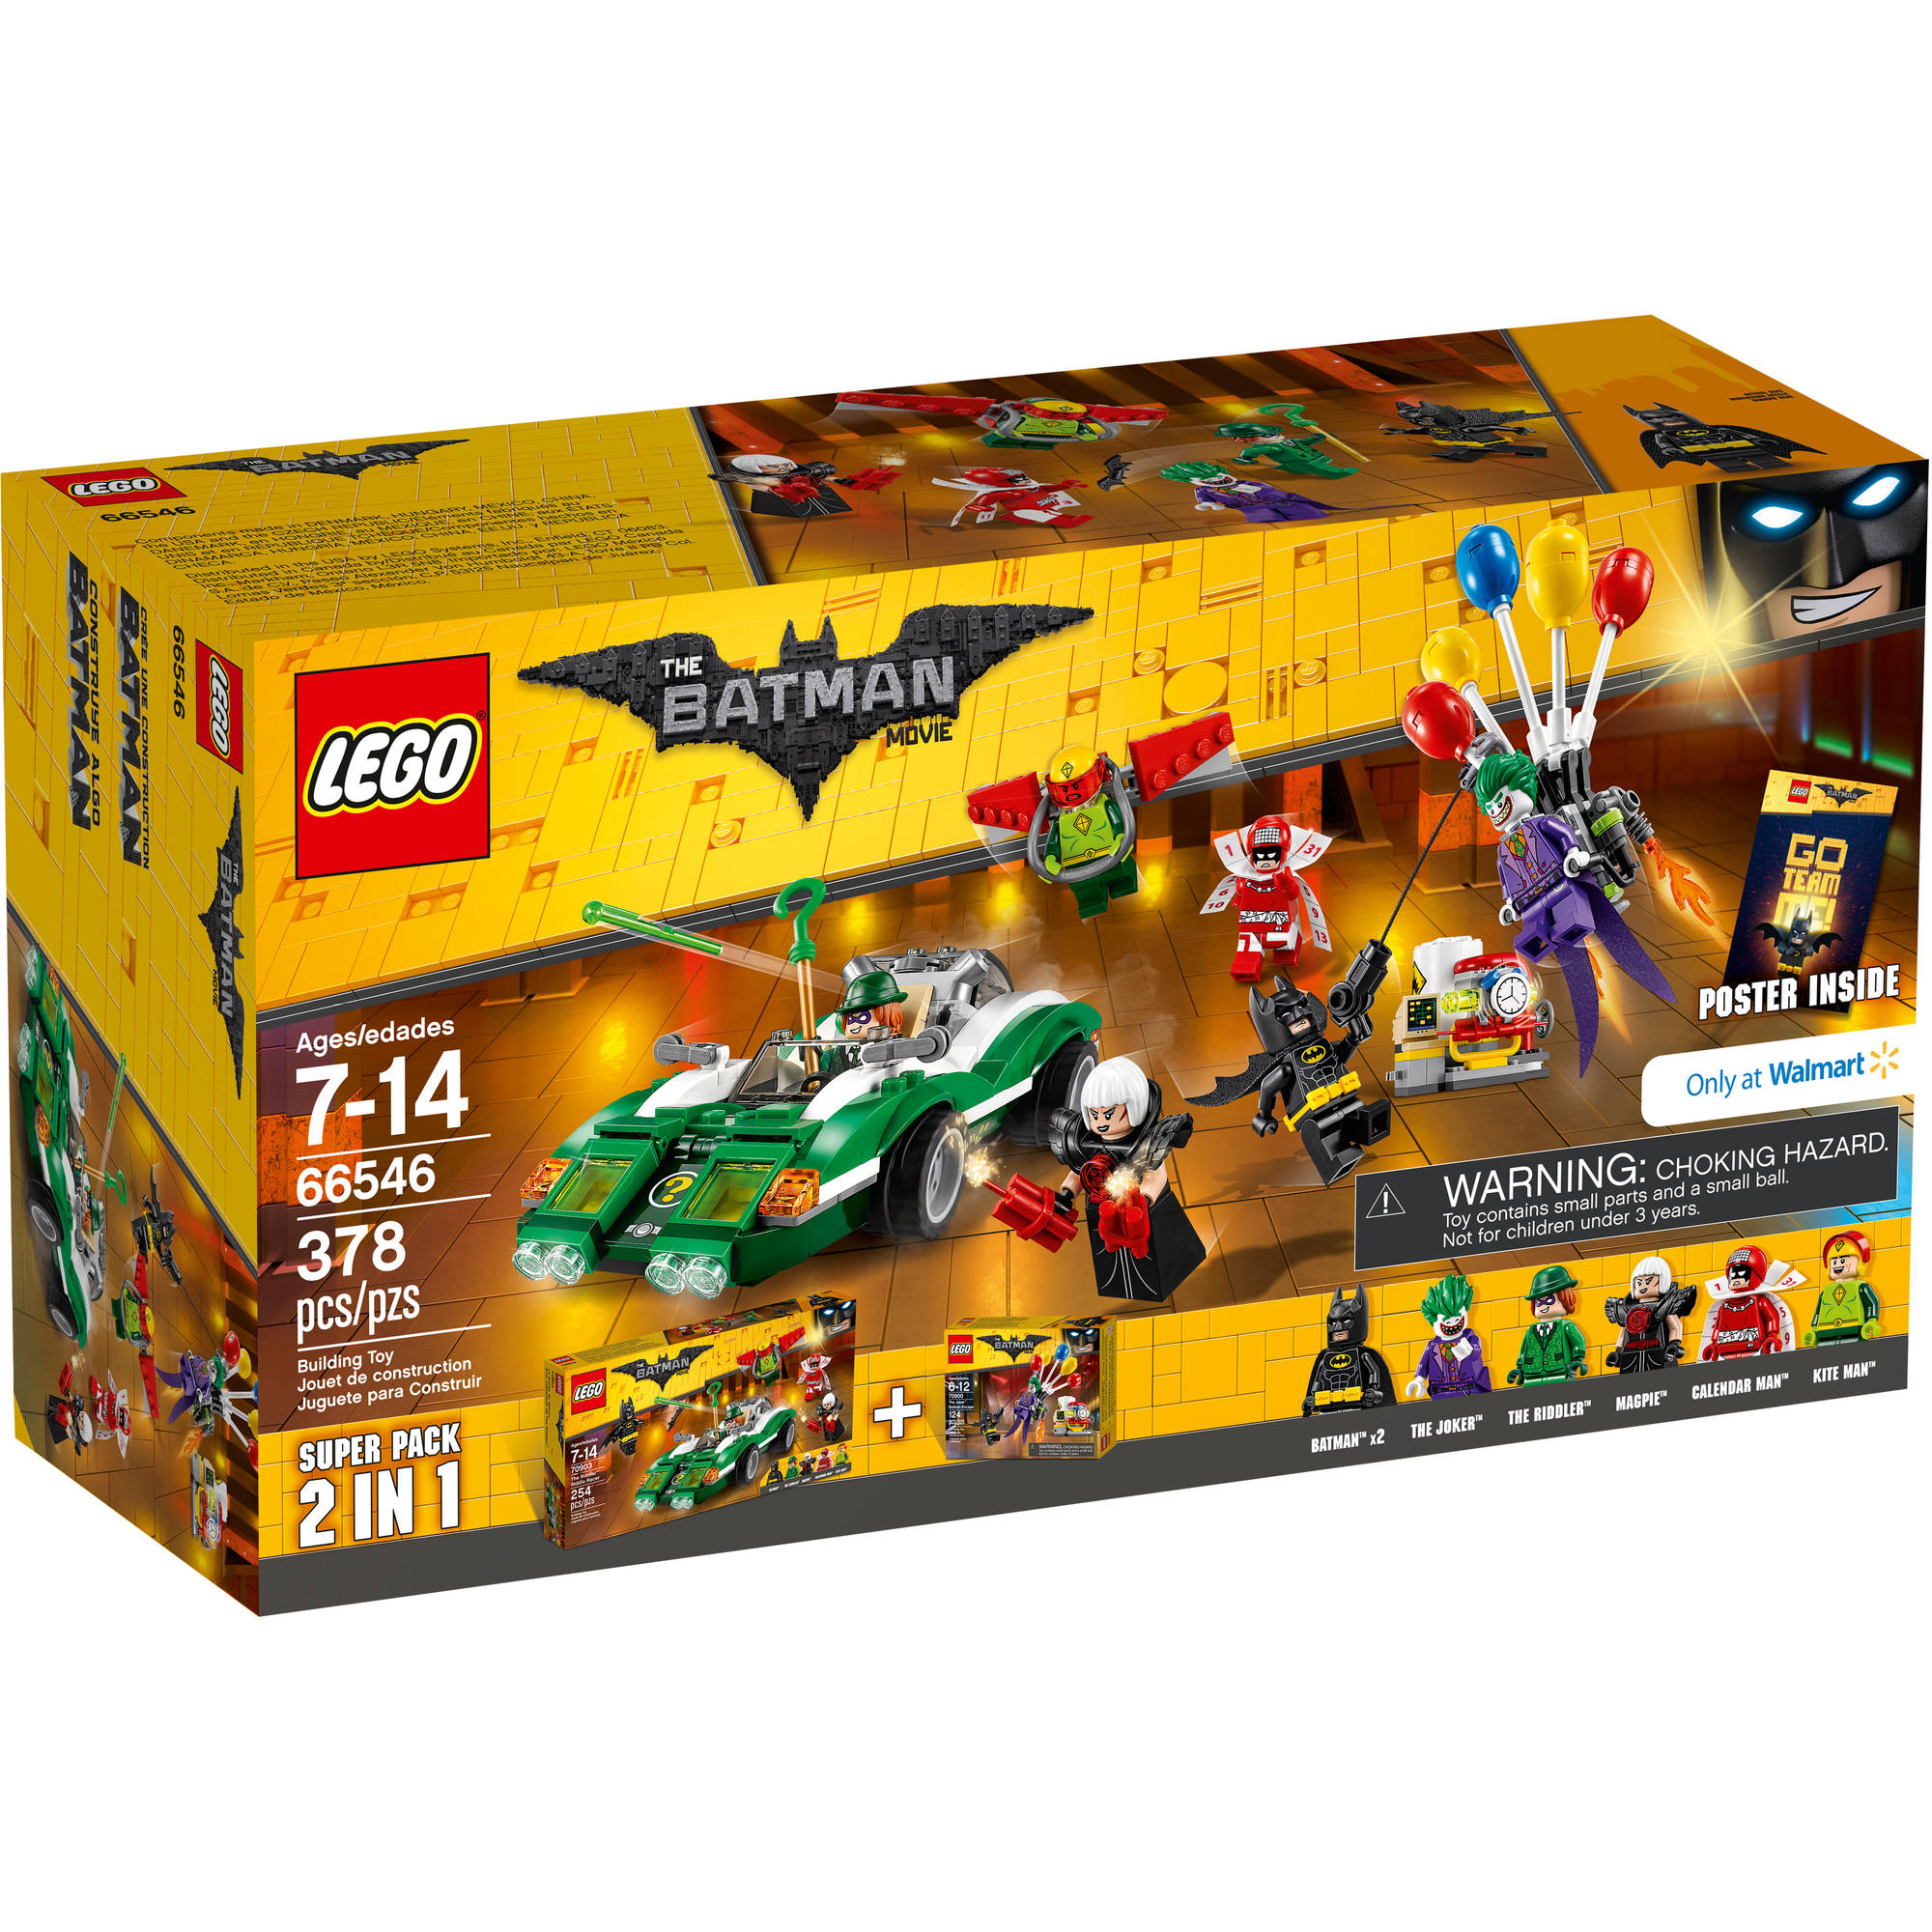 The LEGO Batman Movie - Copack (66546) The Joker Balloon Escape (70900) The Riddler Riddle Racer (70903)